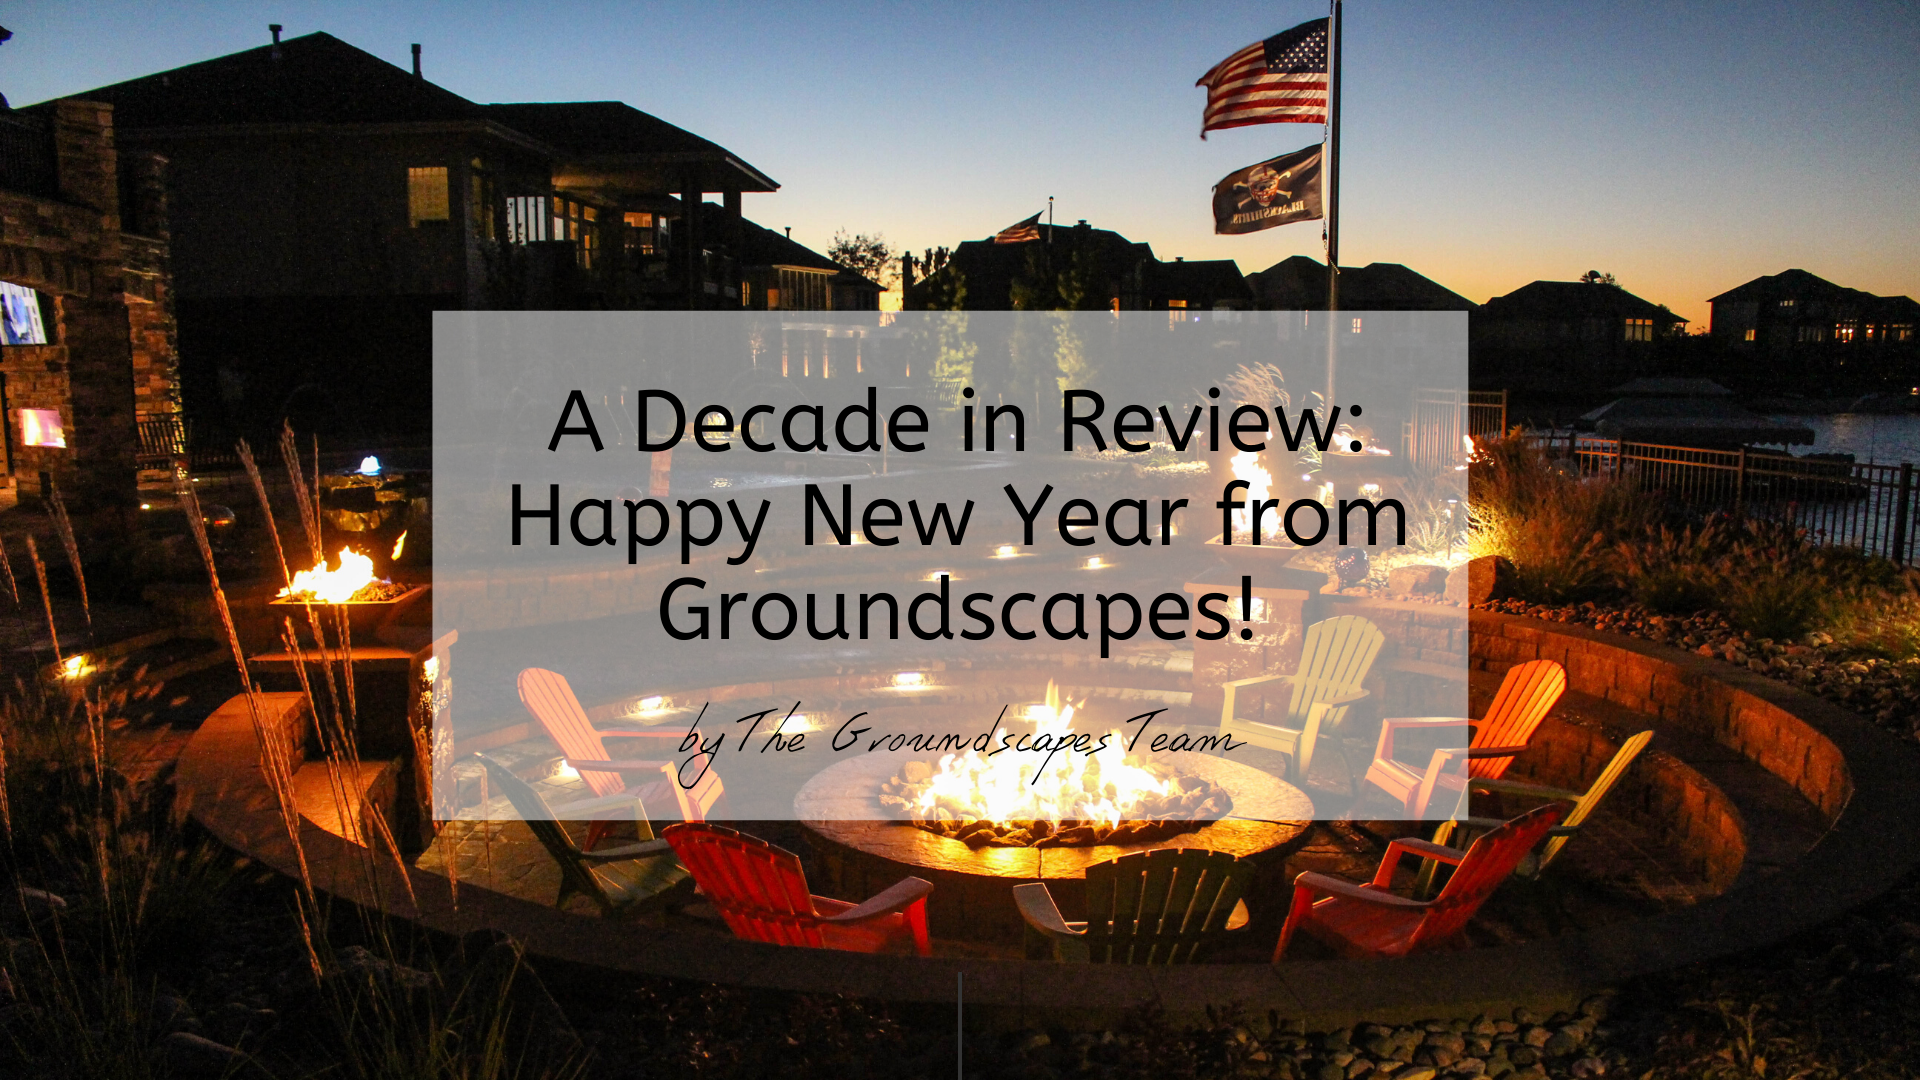 A Decade in Review: Happy New Year from Groundscapes!